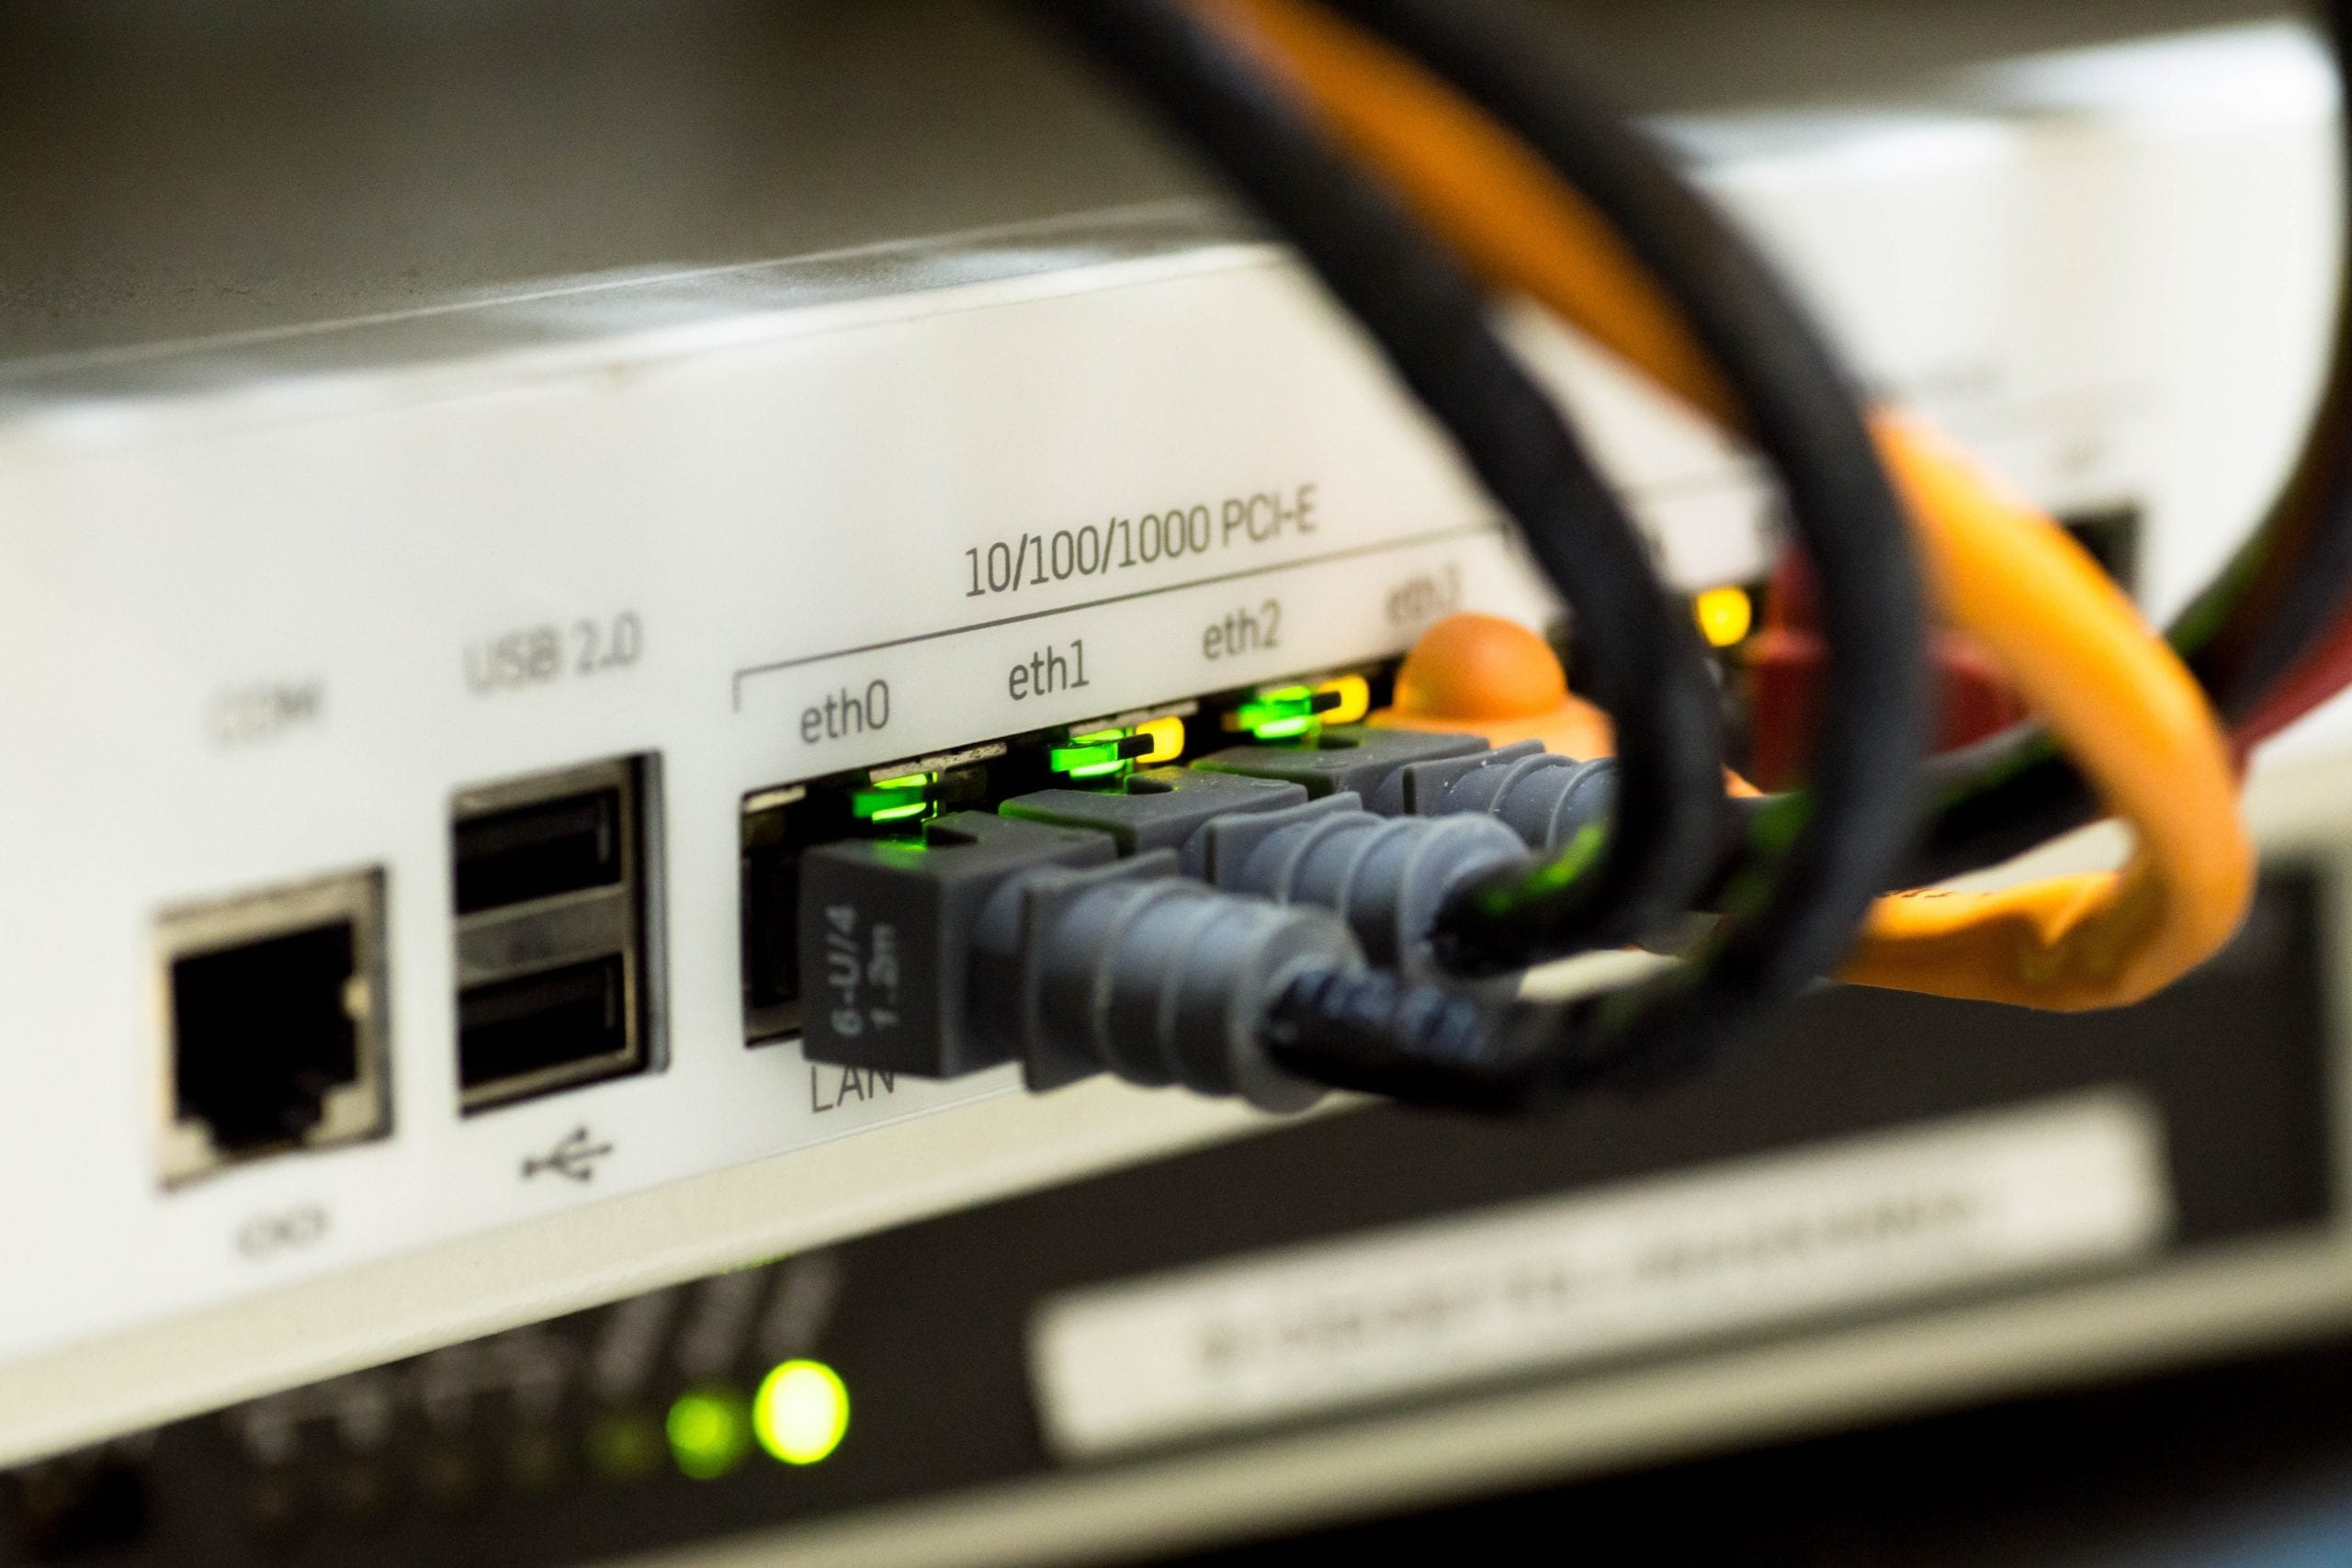 We can help your business achieve optimal performance through an efficient and effective wired and wireless network.